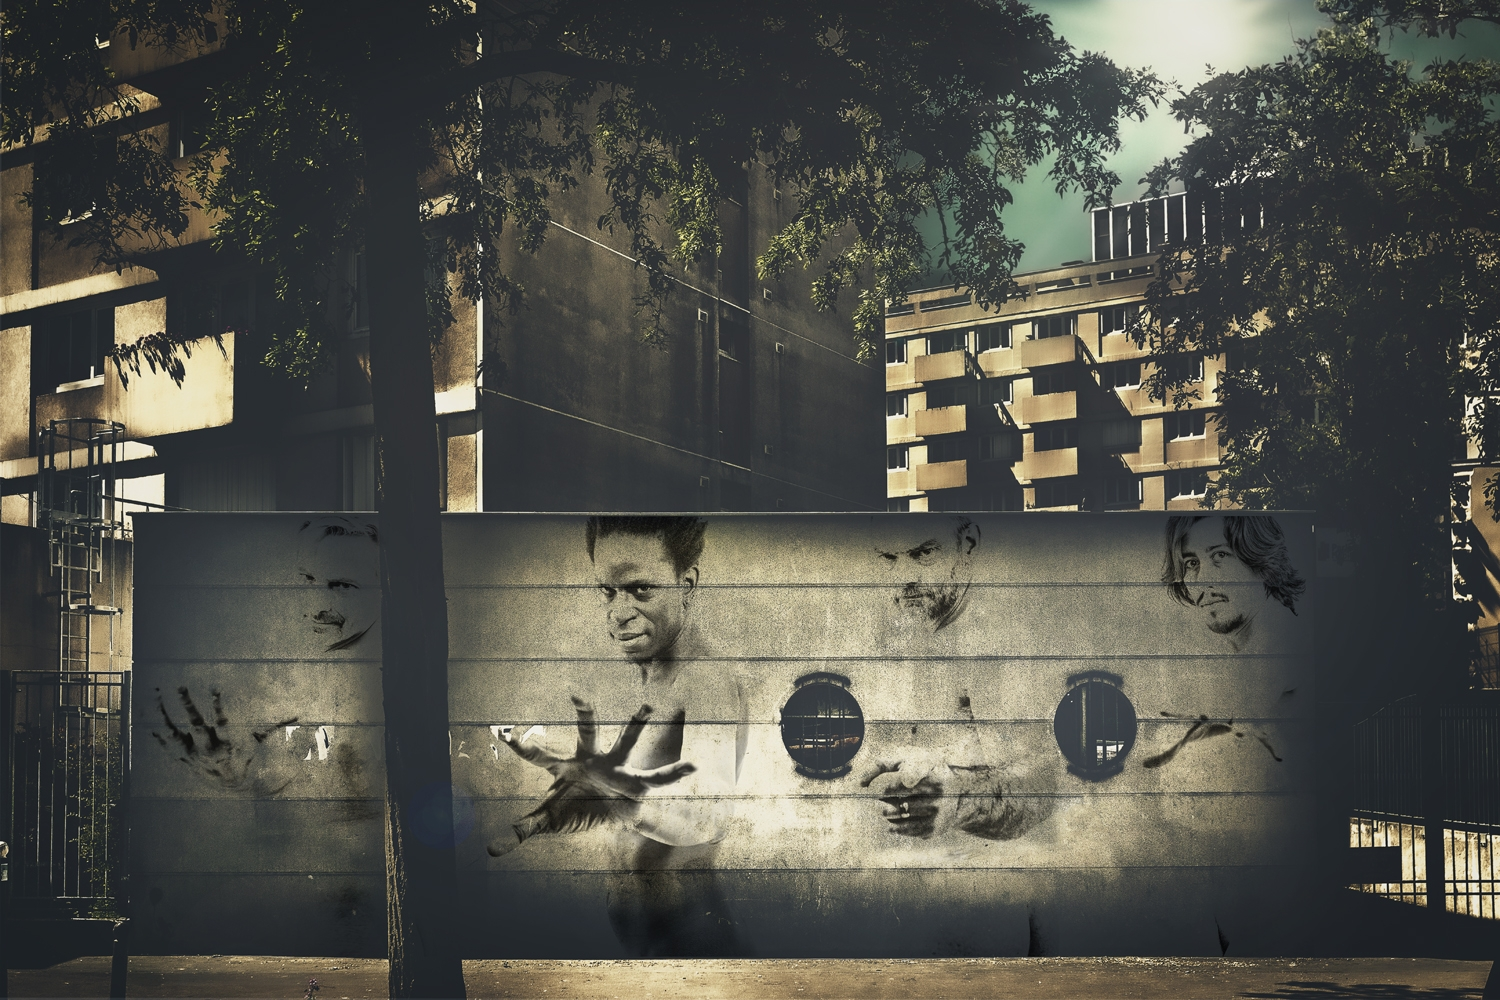 Appollon Square - Virtual Street Art by Idan Wizen